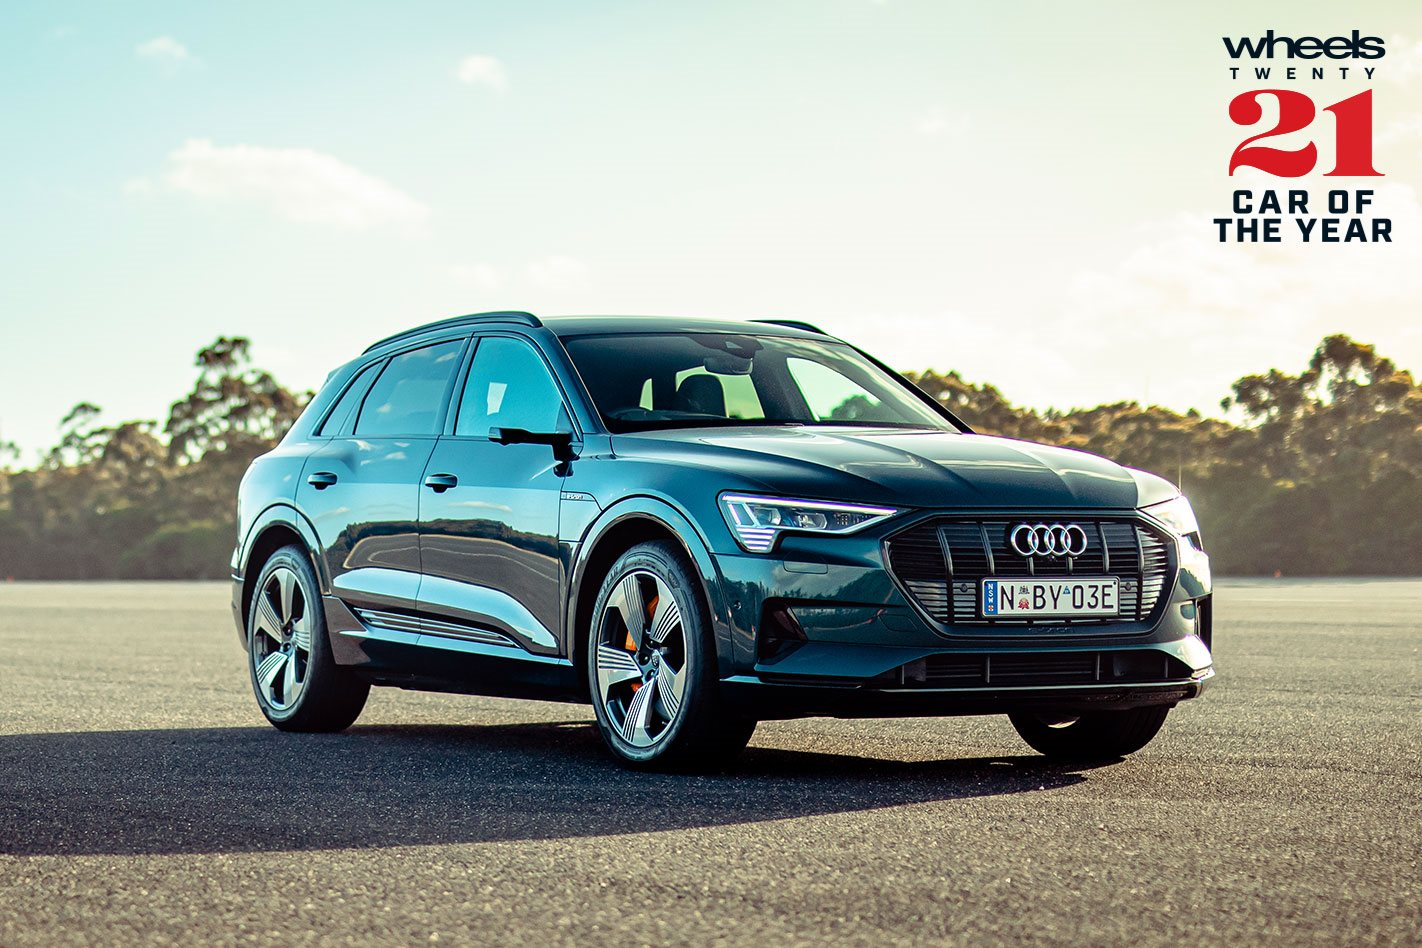 Car of the Year 2021 results: Audi e-tron